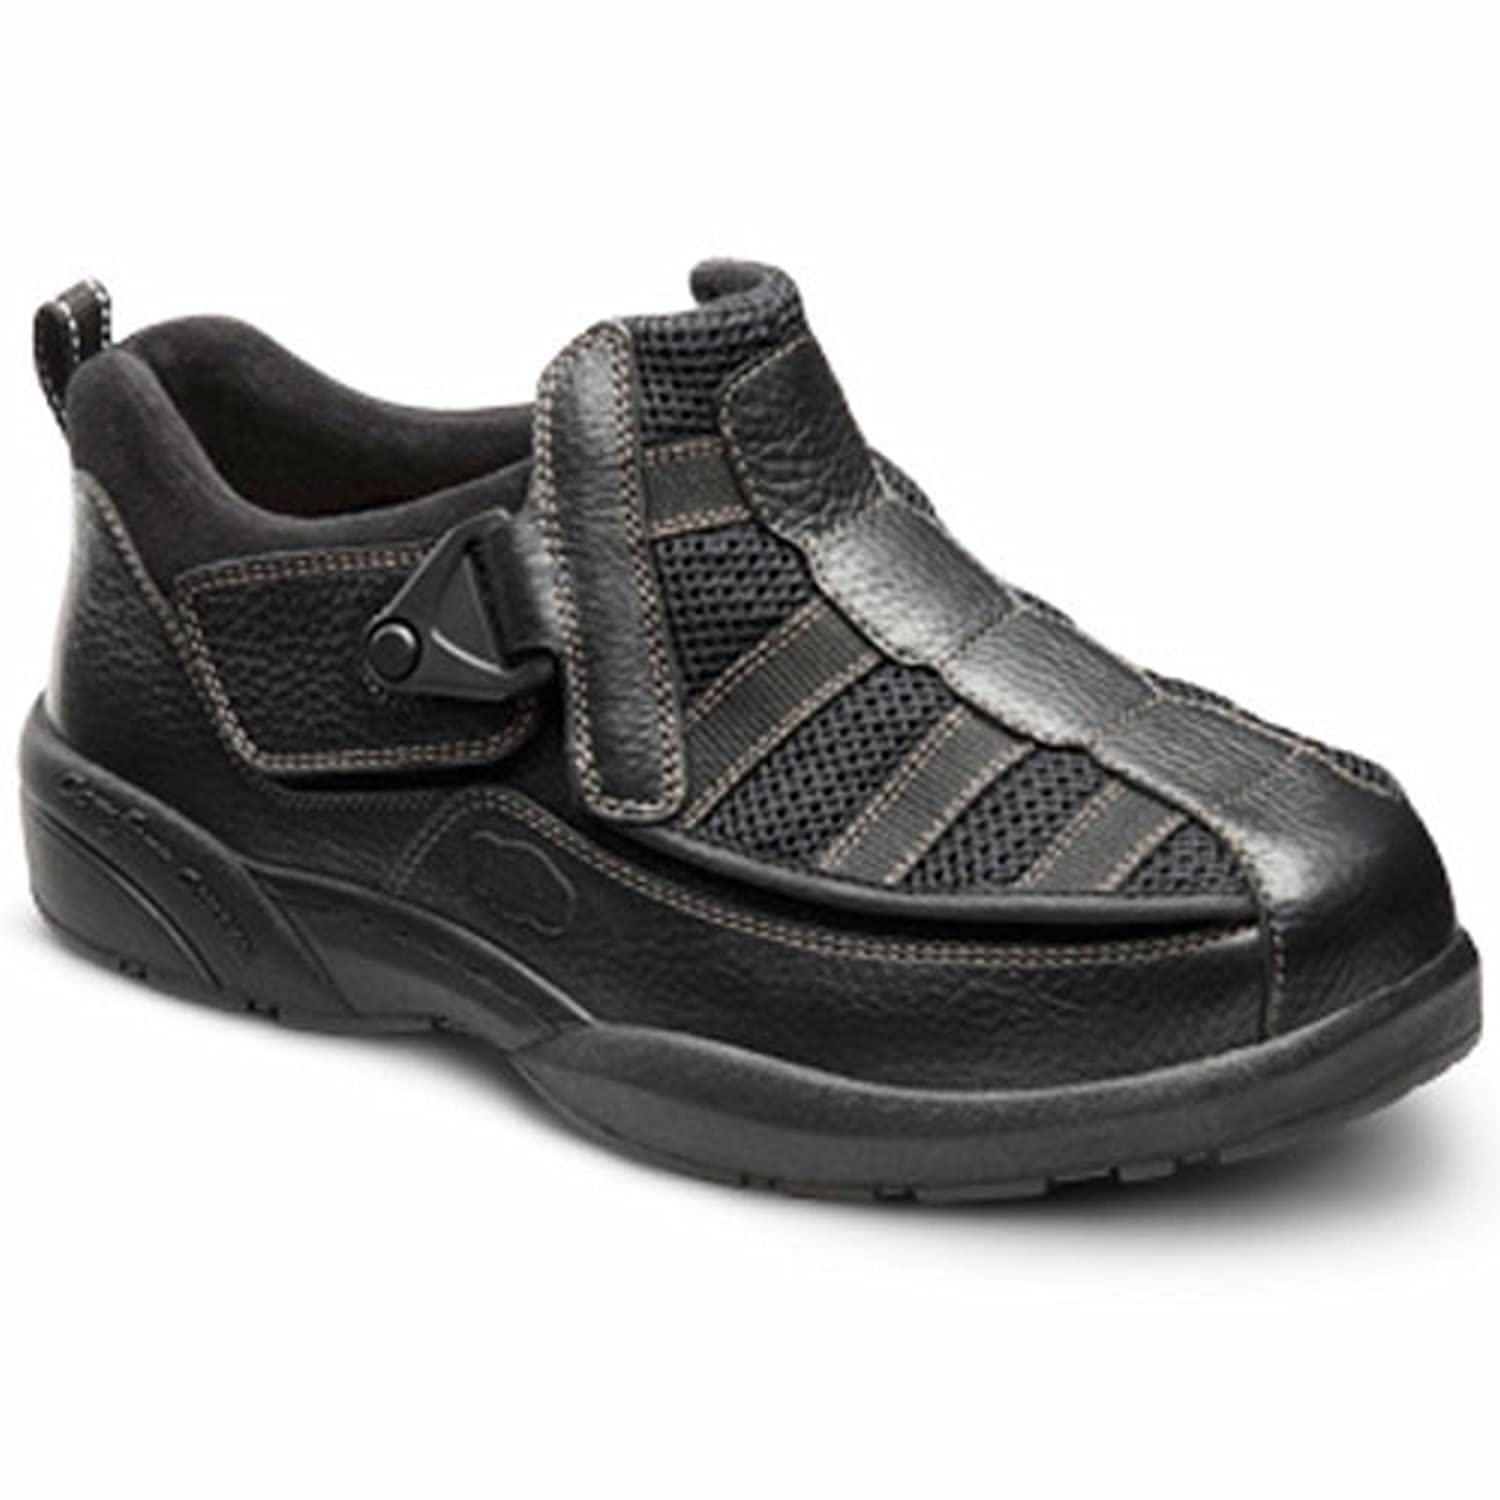 Dr. Comfort Edward-X Mens Casual Shoe -6.0 X-Wide (XW/6E) Black Velcro US Men|Black